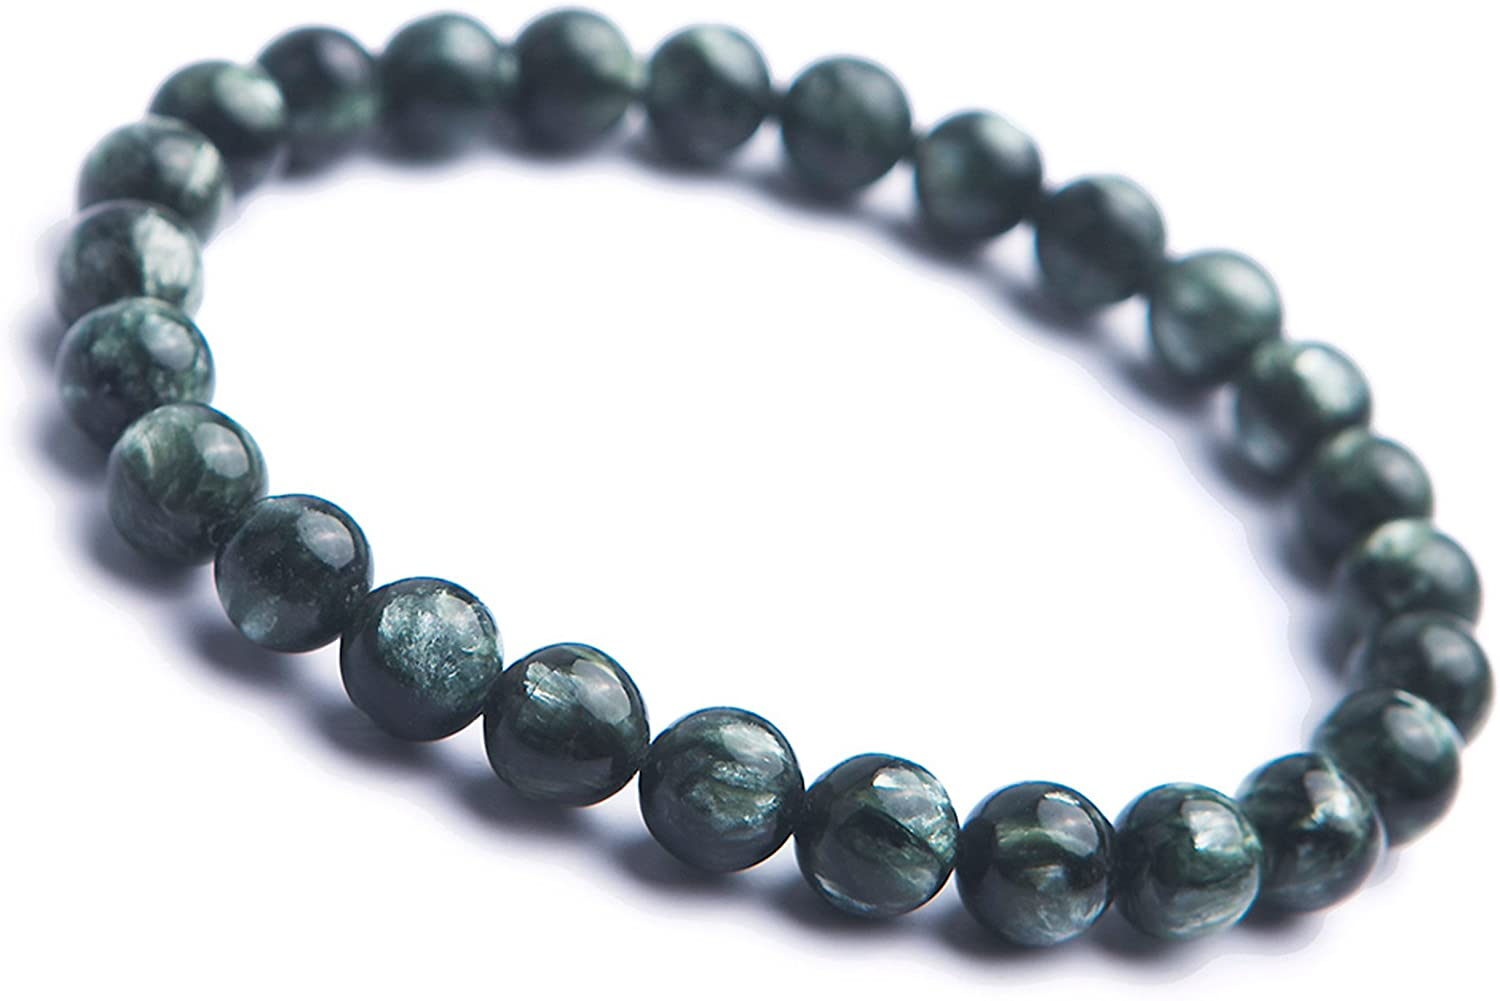 Genuine Green Natural Seraphinite Gemstone Round Bead Stretch Bracelet 7mm